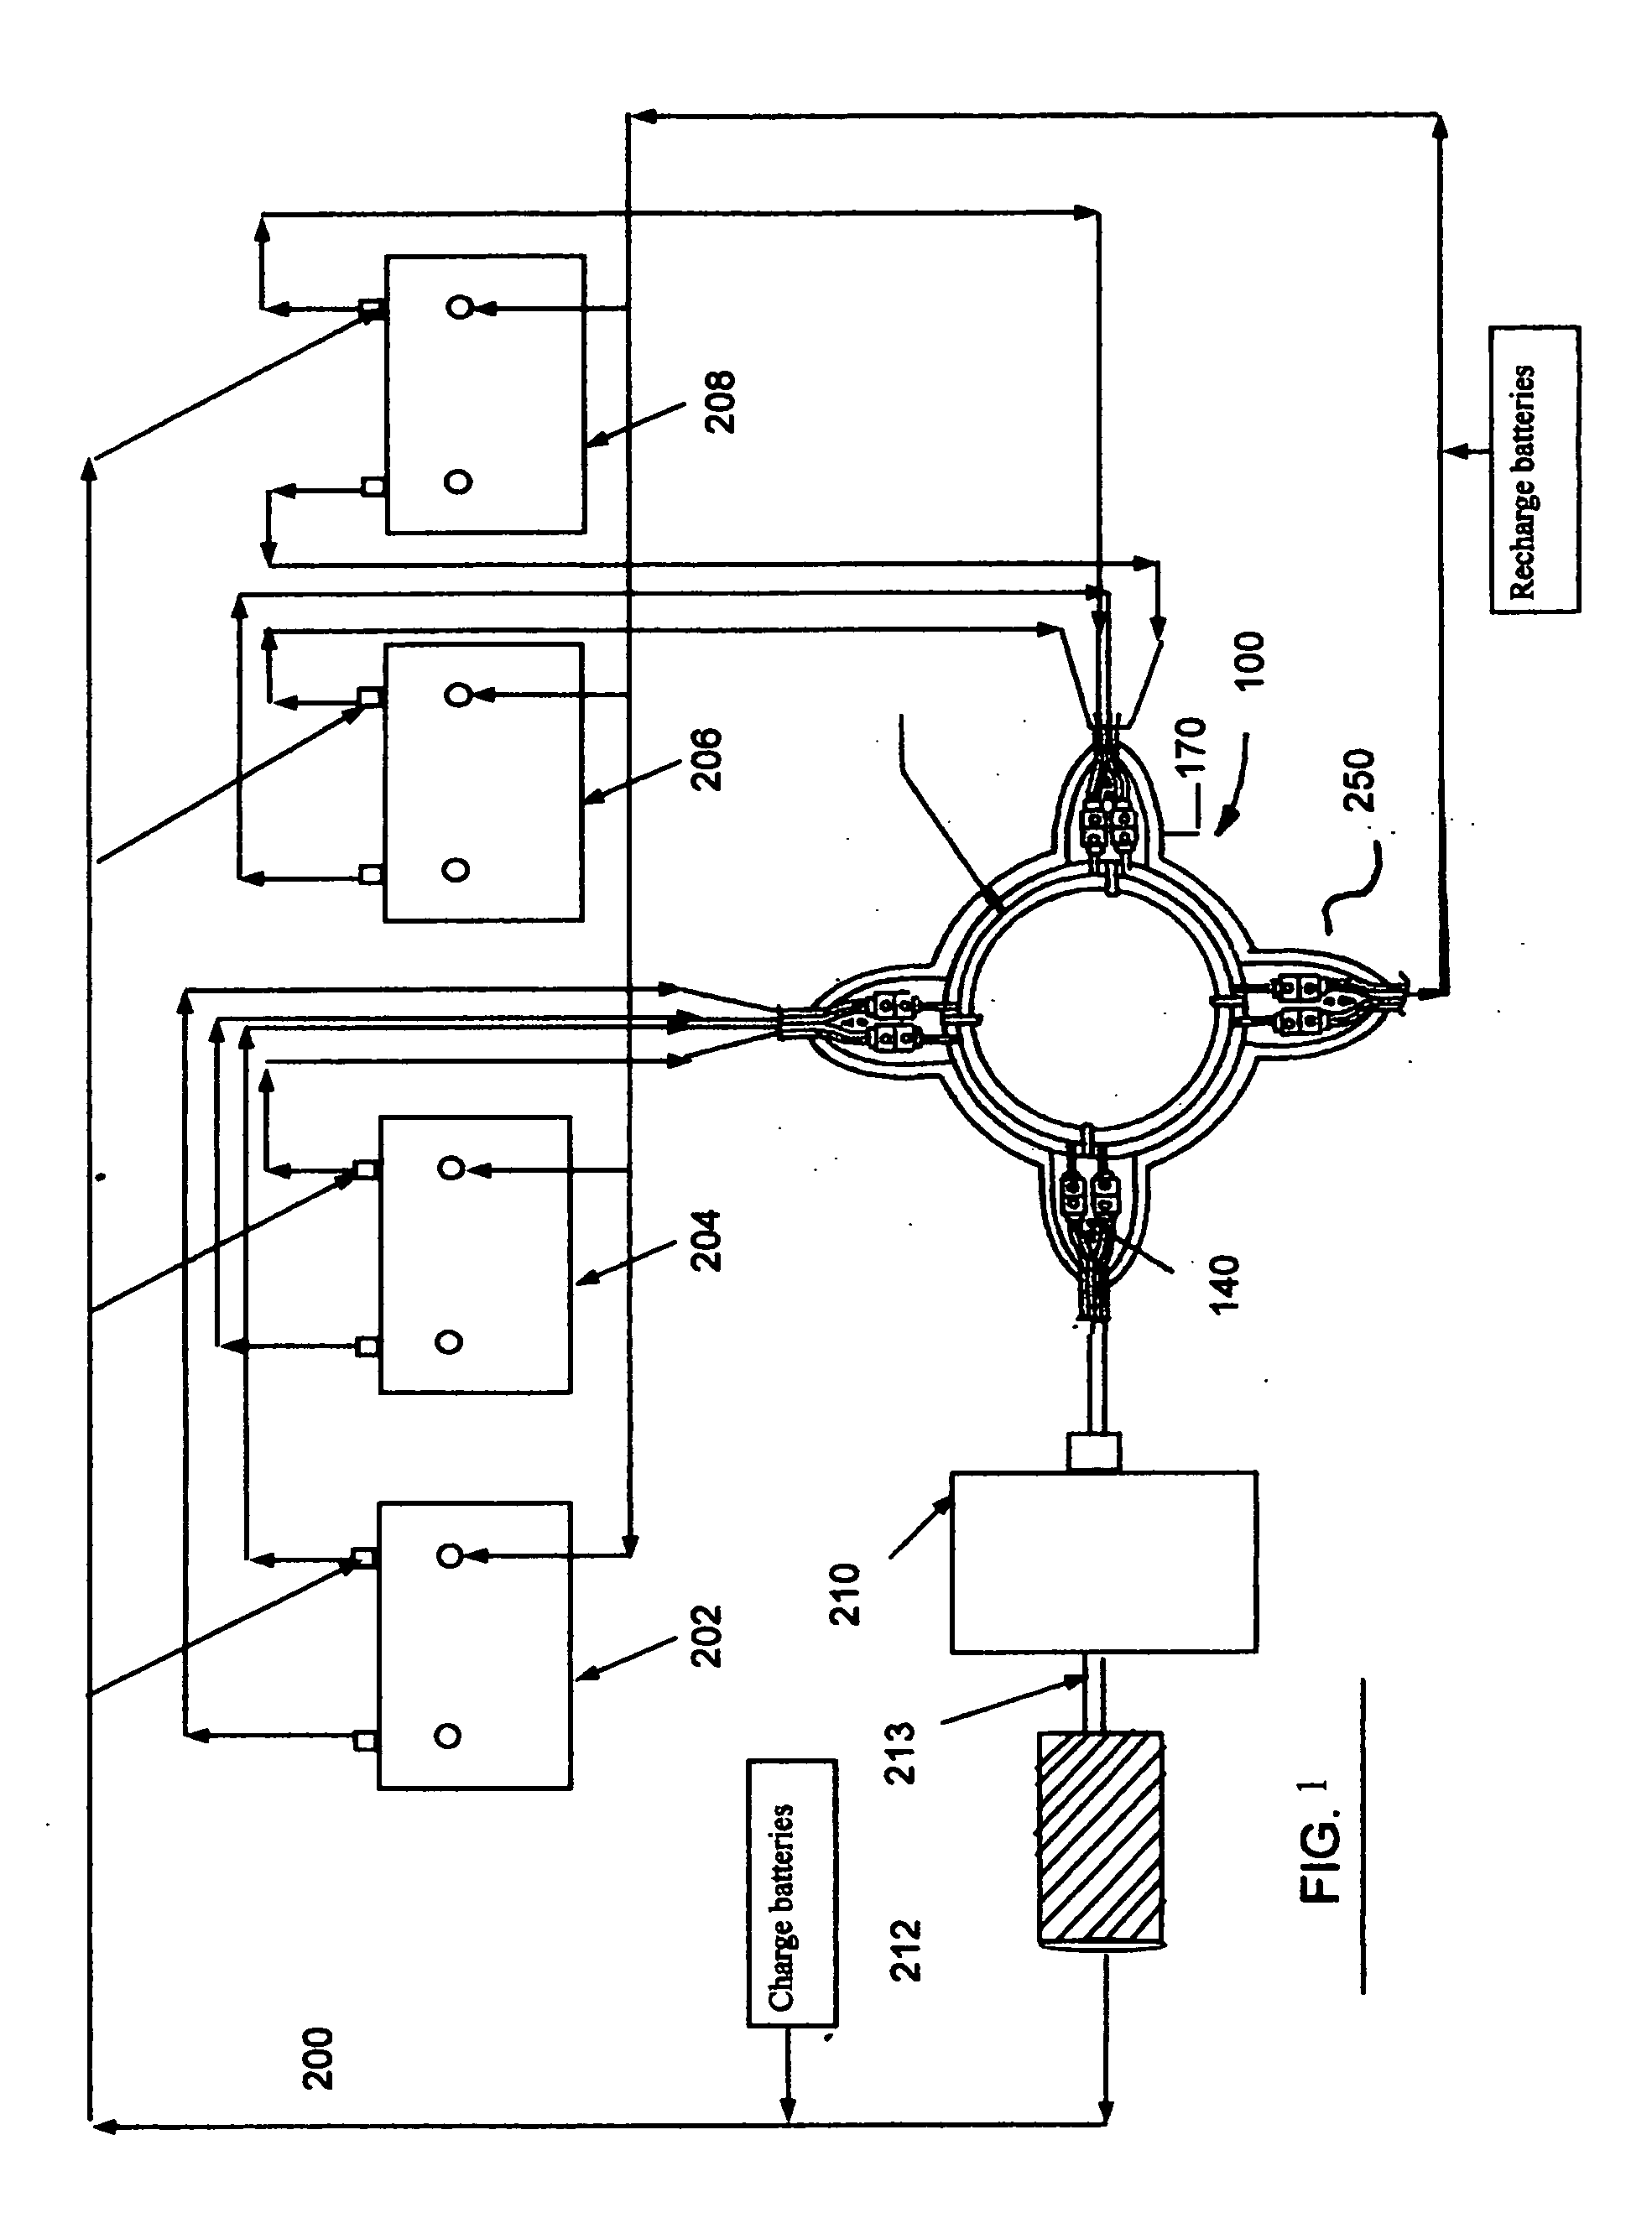 Patent US20050173996 - Perpetual motion energy - Google Patents